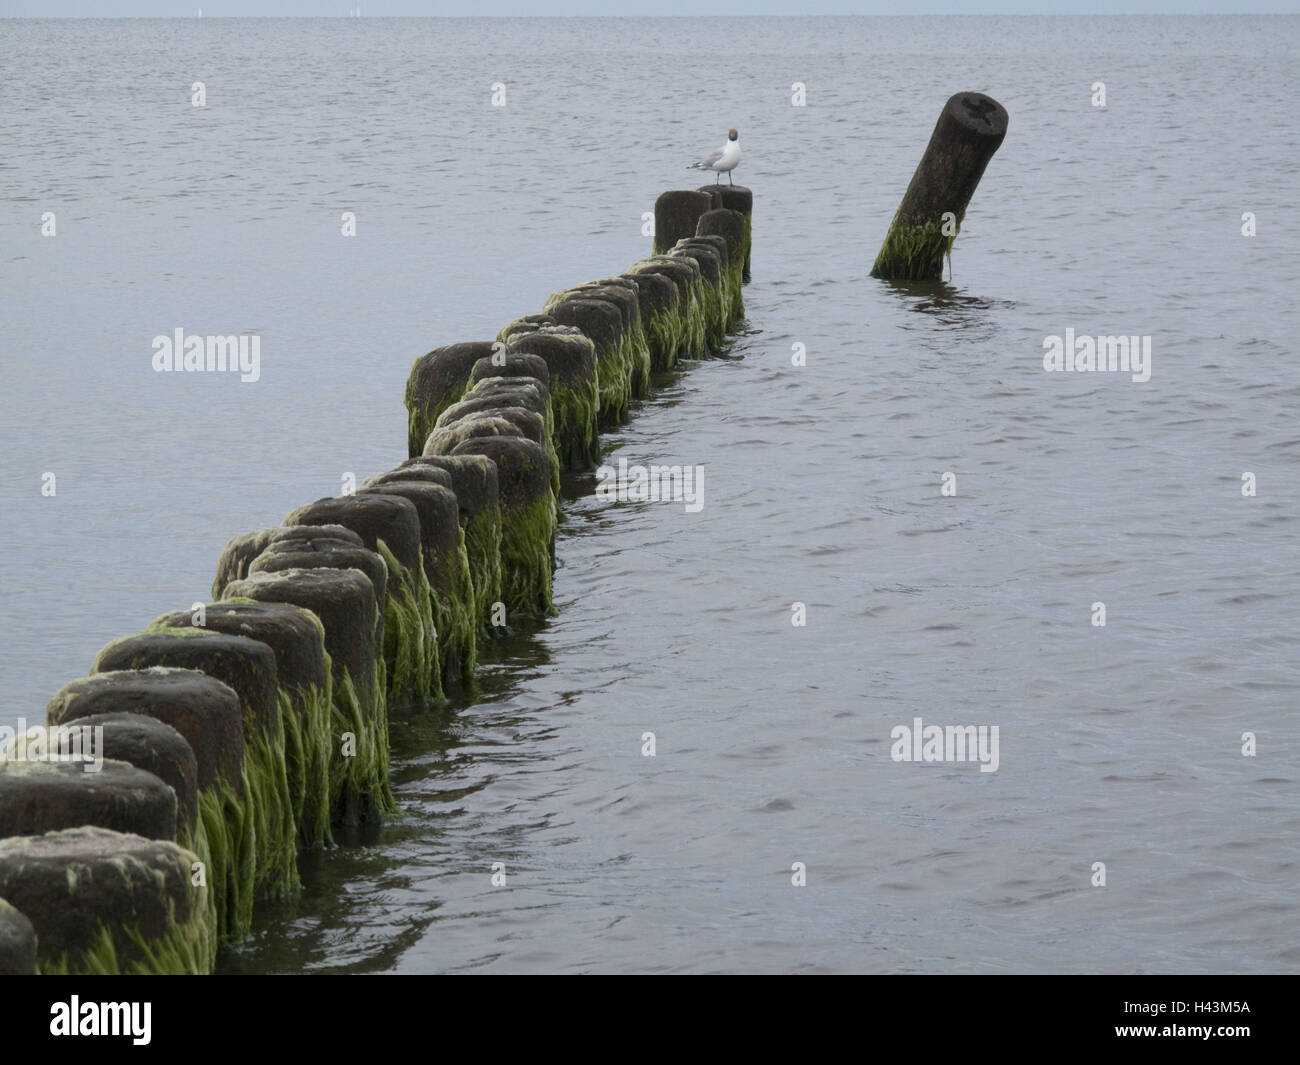 Breakwaters with sludge on the coast, gull, - Stock Image